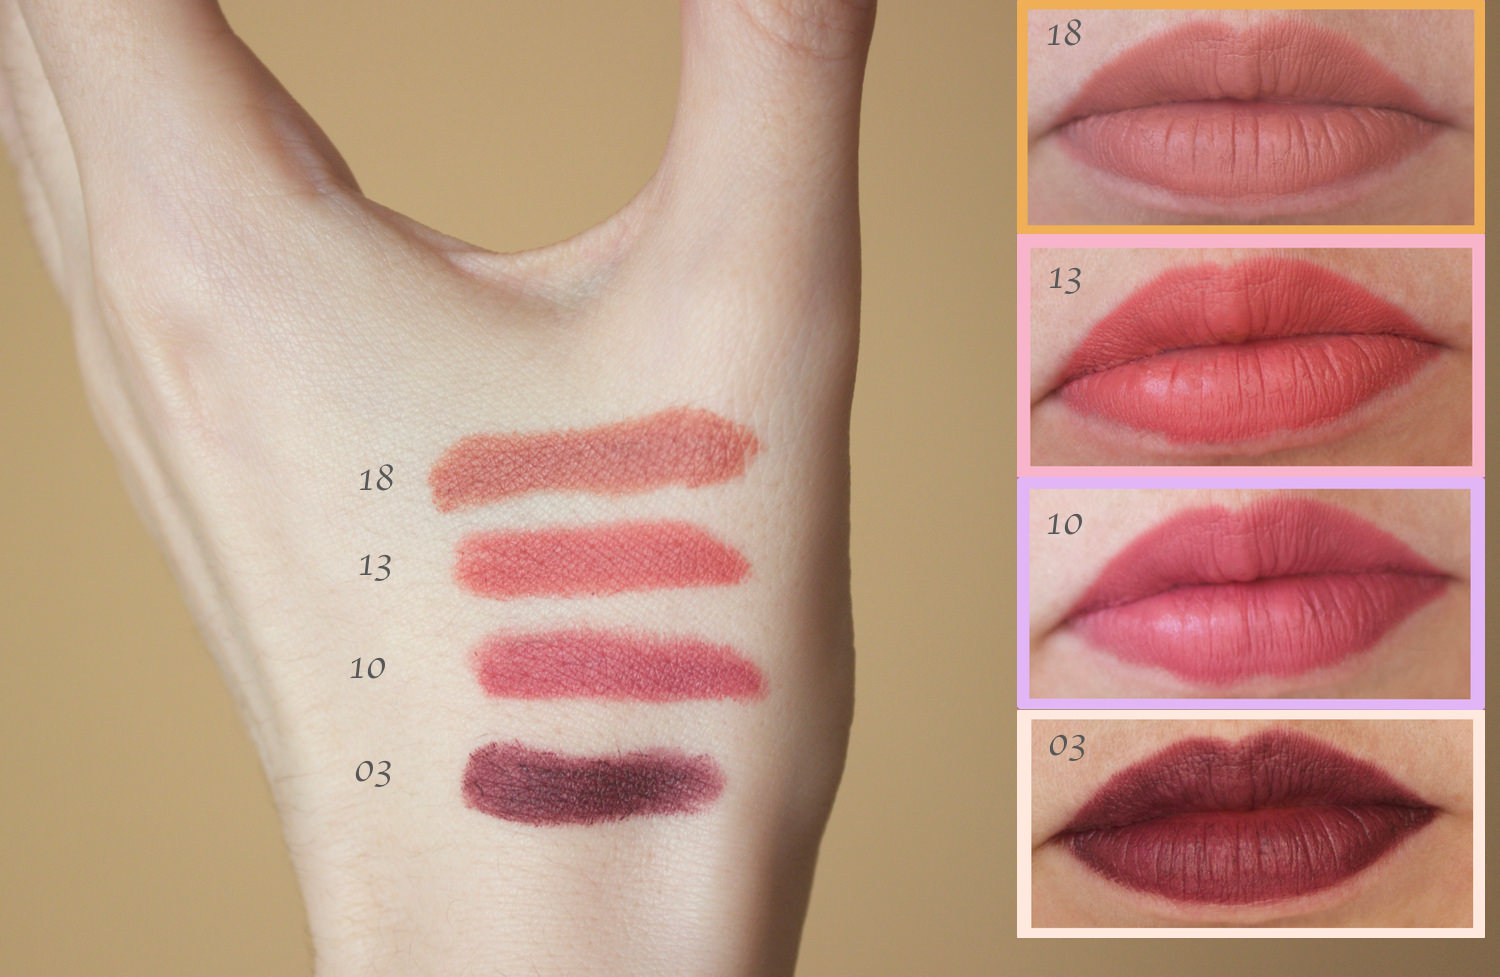 Golden rose matte lipstick crayons in the shades 03, 10, 13 and 18 swatches